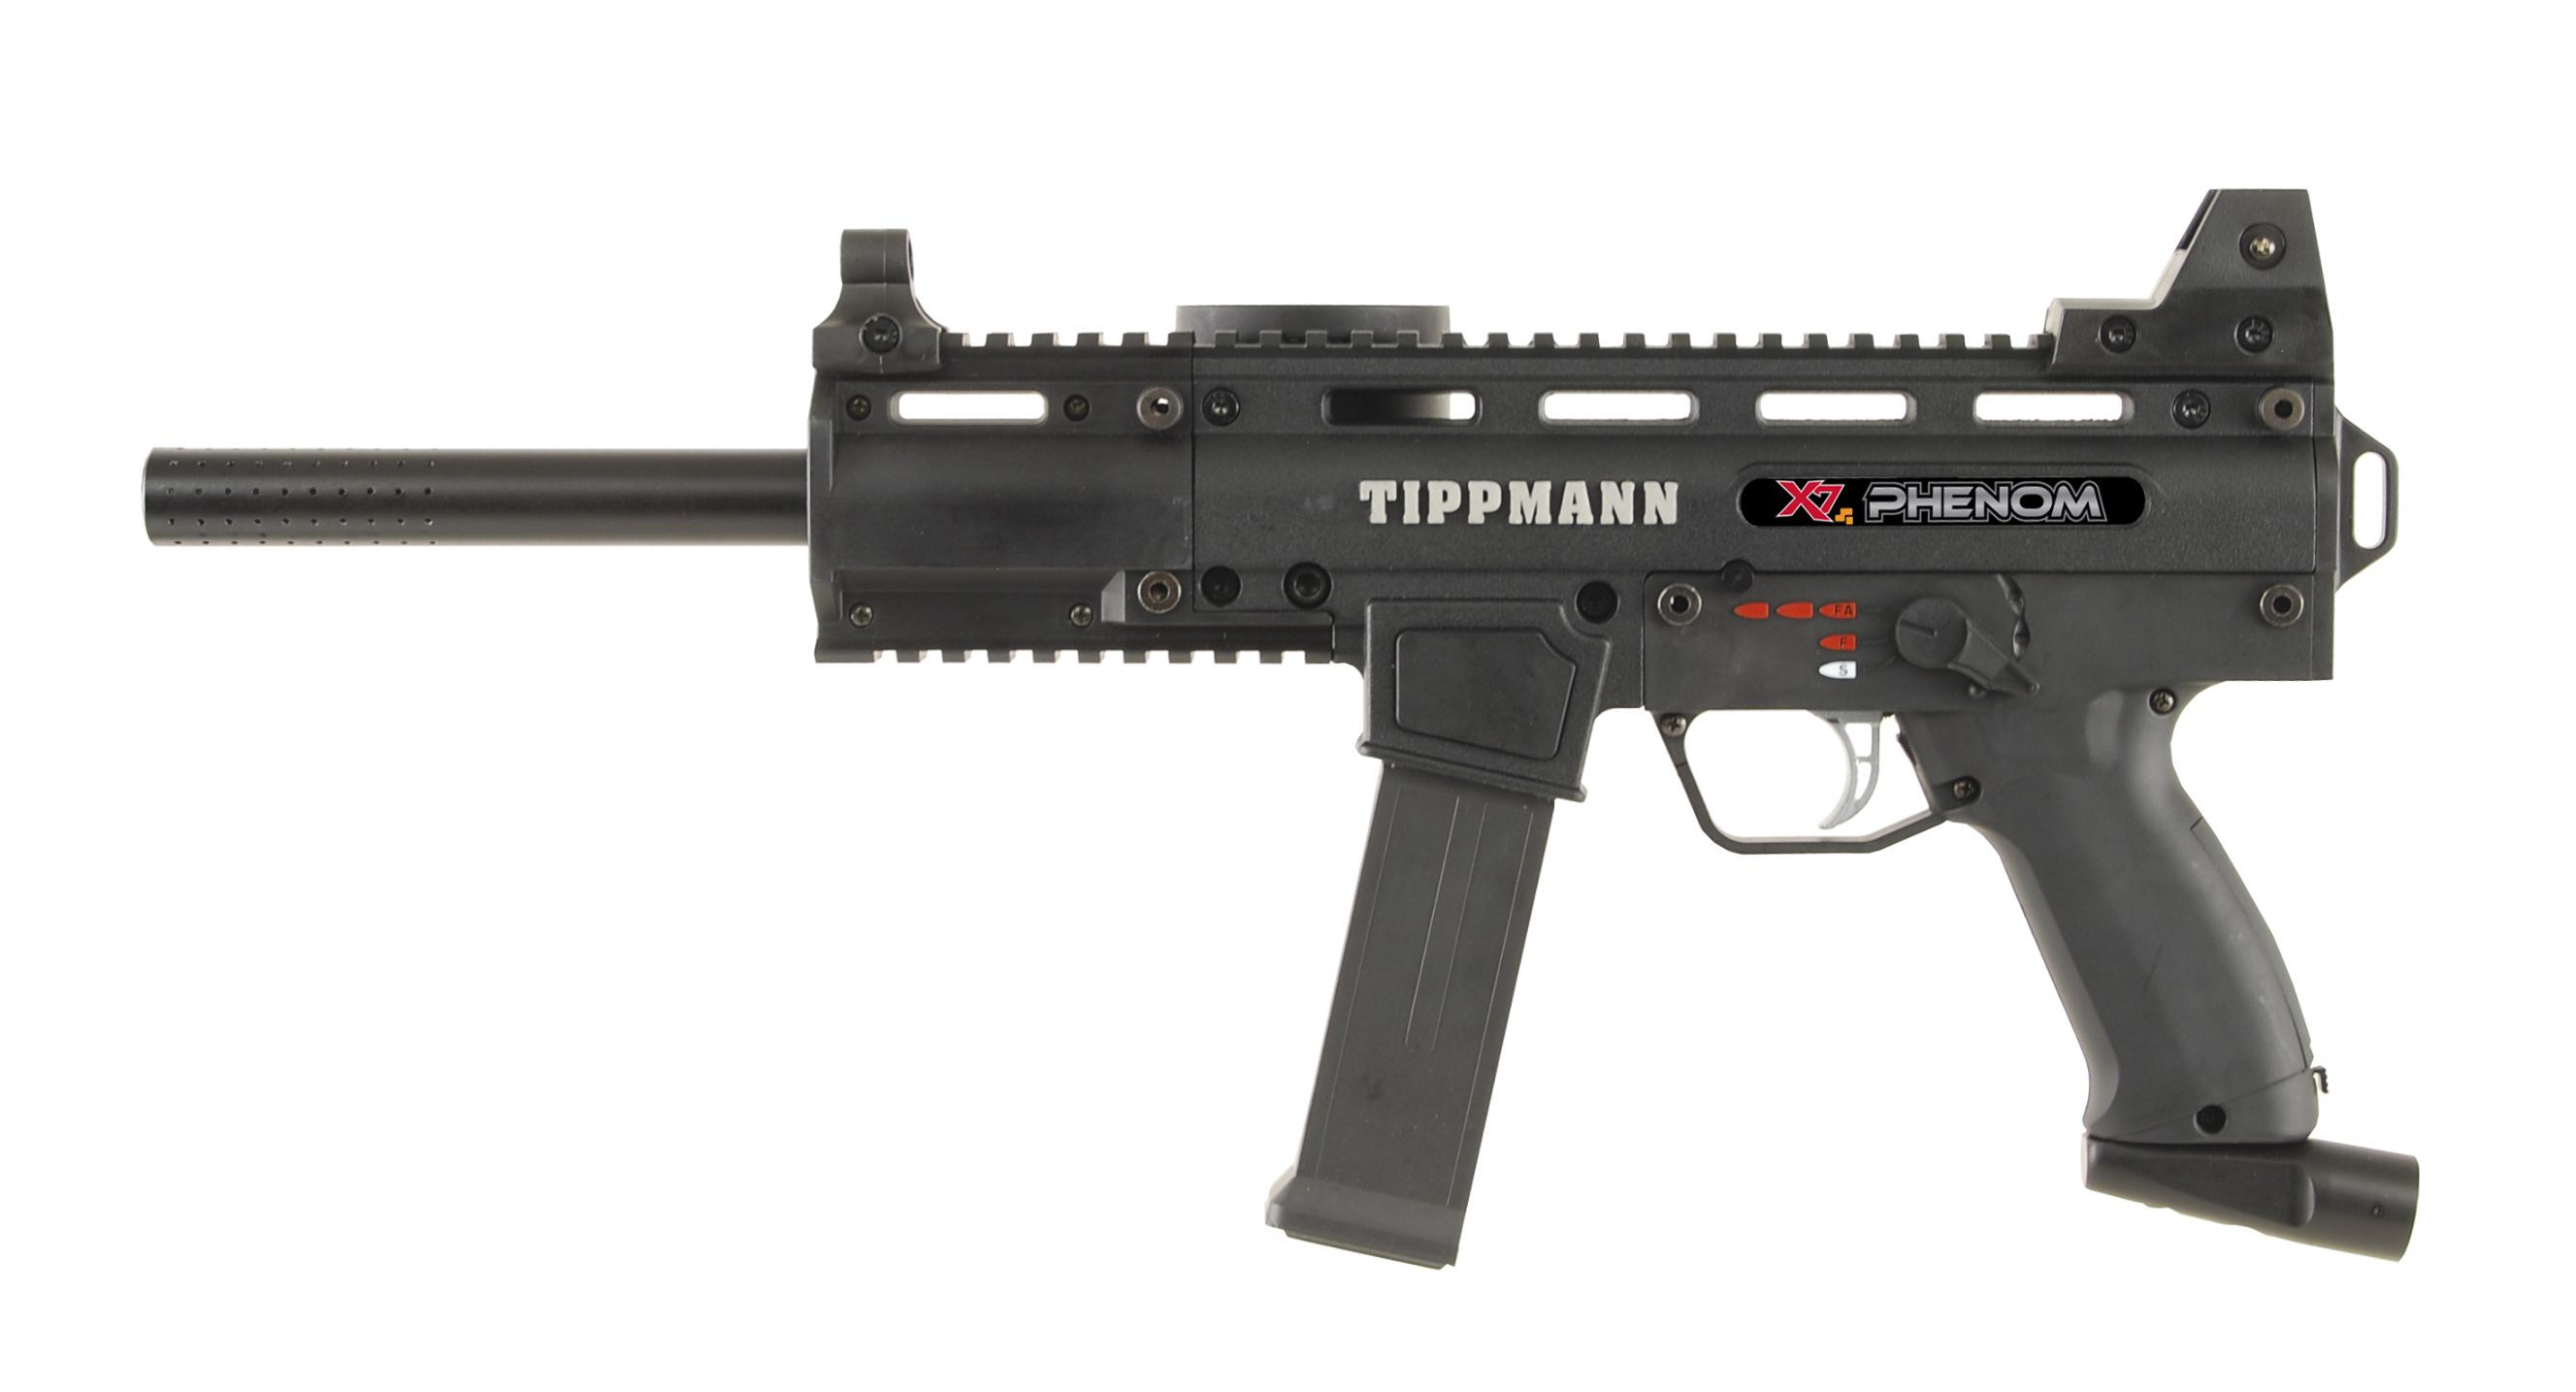 tippmann-x7-phenom-rifleman-scenario-marker-package-mechanical